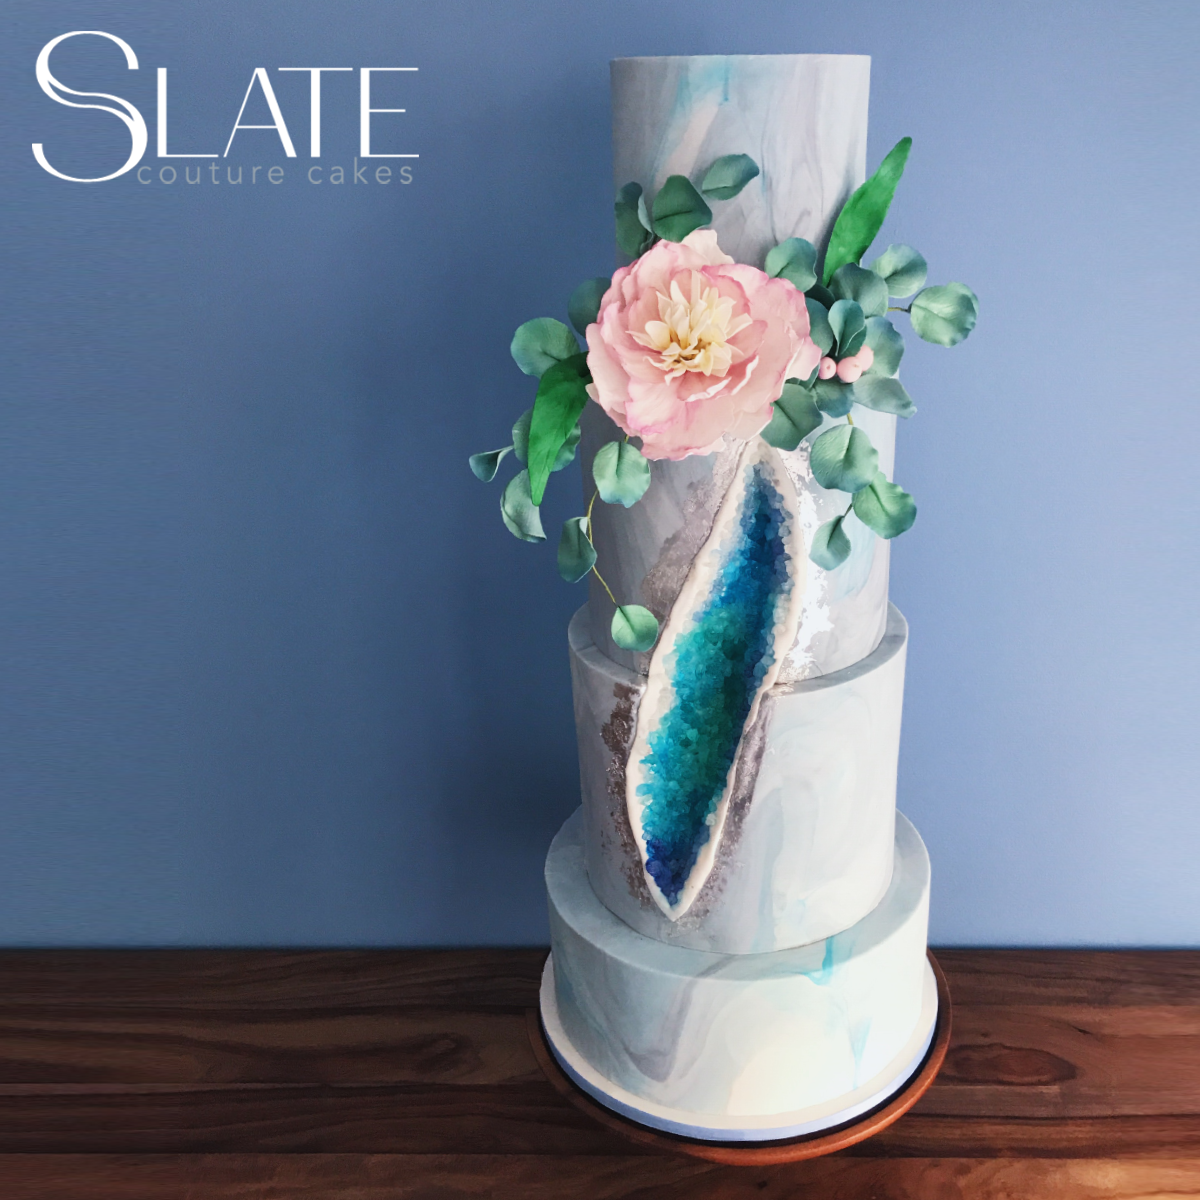 Light blue fondant wedding cake with turquoise crystals